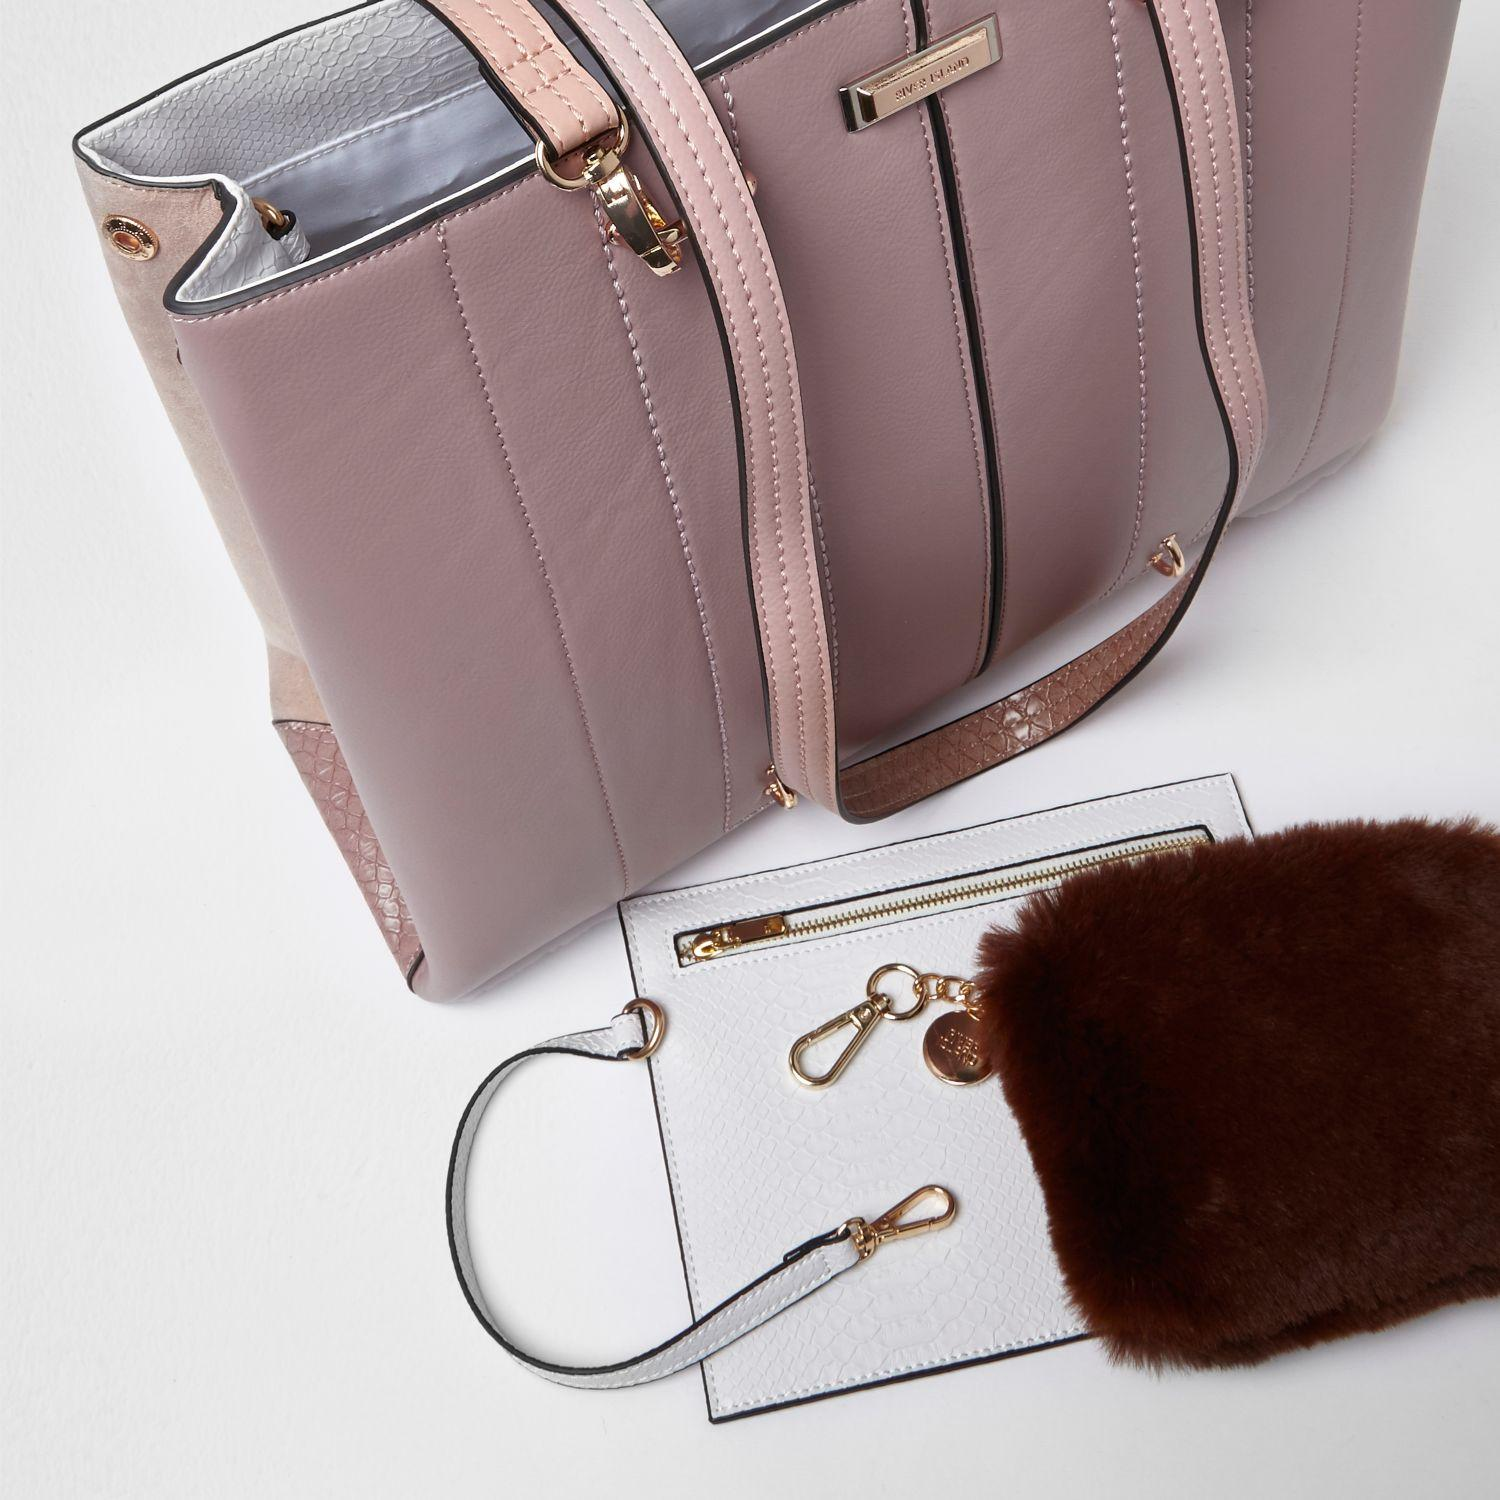 5a8164b1fa Lyst - River Island Pink Long Handle Fur Pouchette Tote Bag in Pink